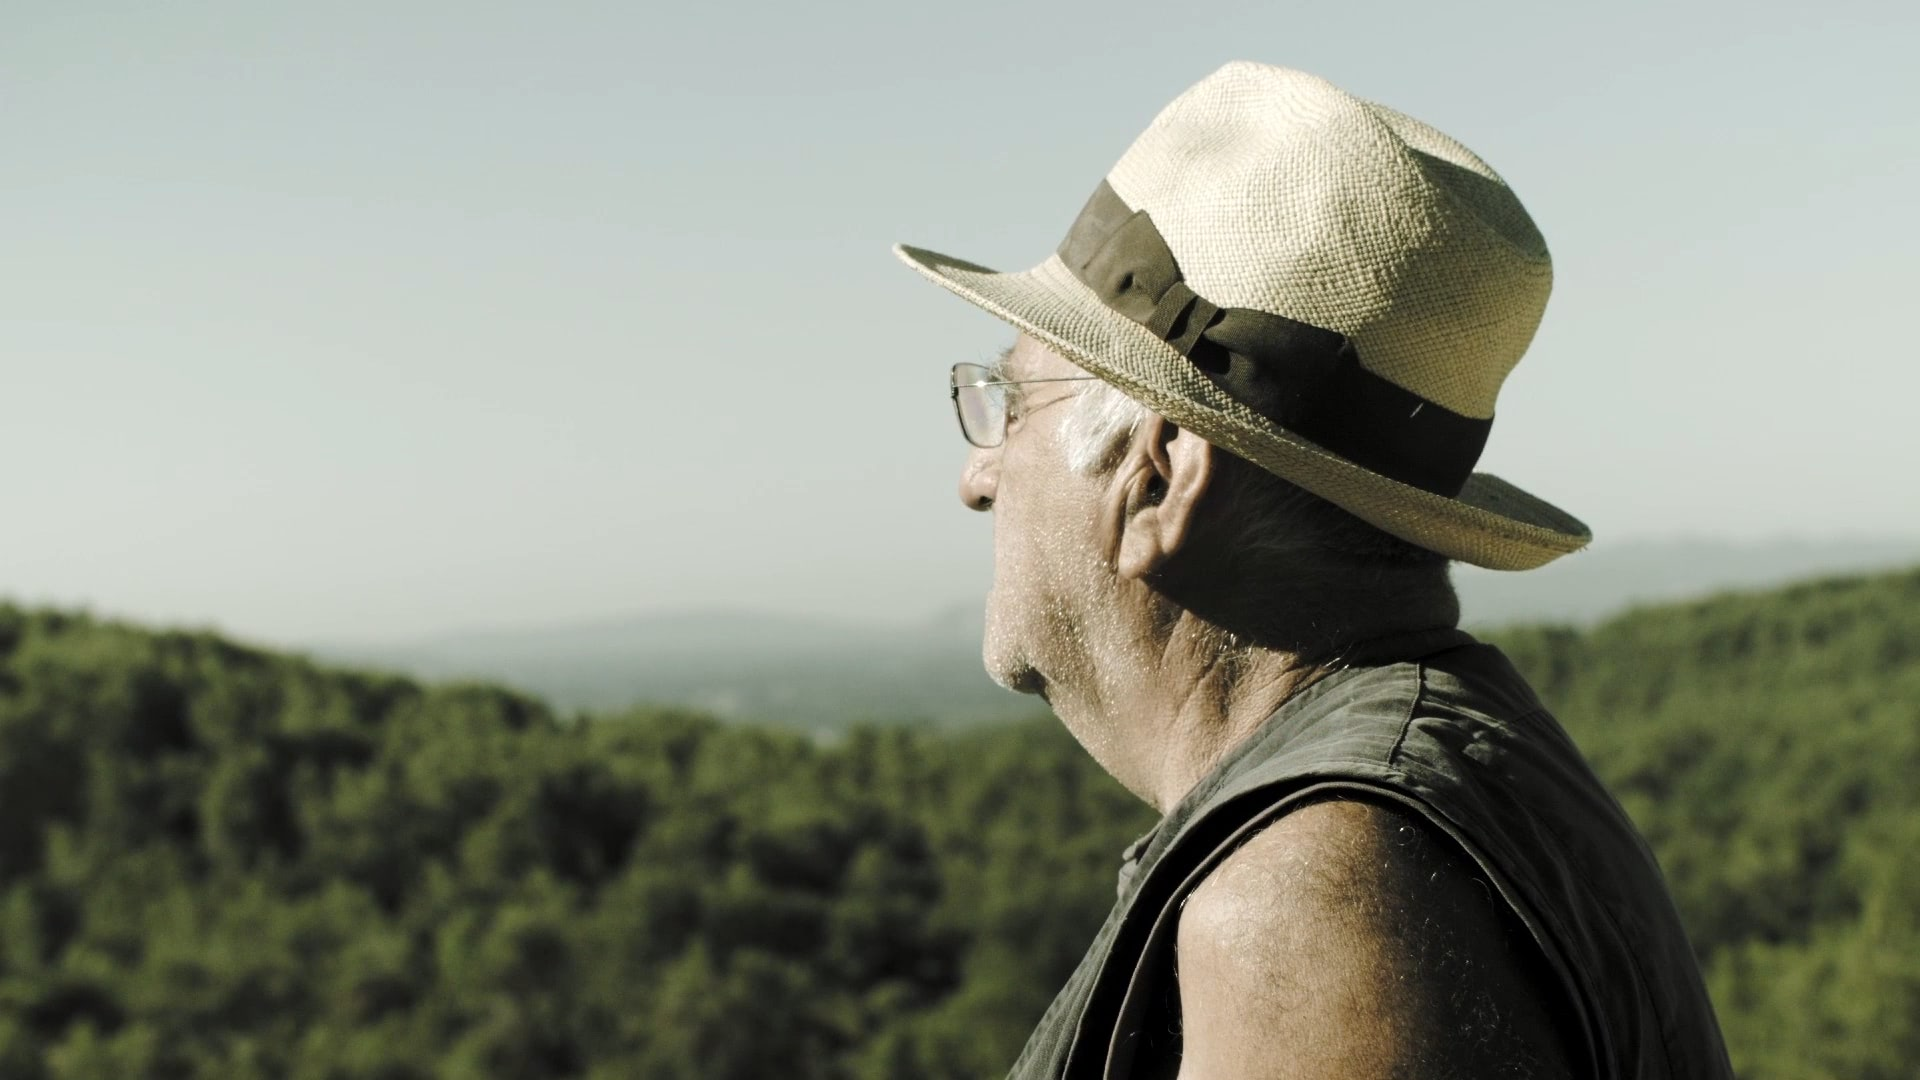 An old man wearing a straw hat looking into the distance.